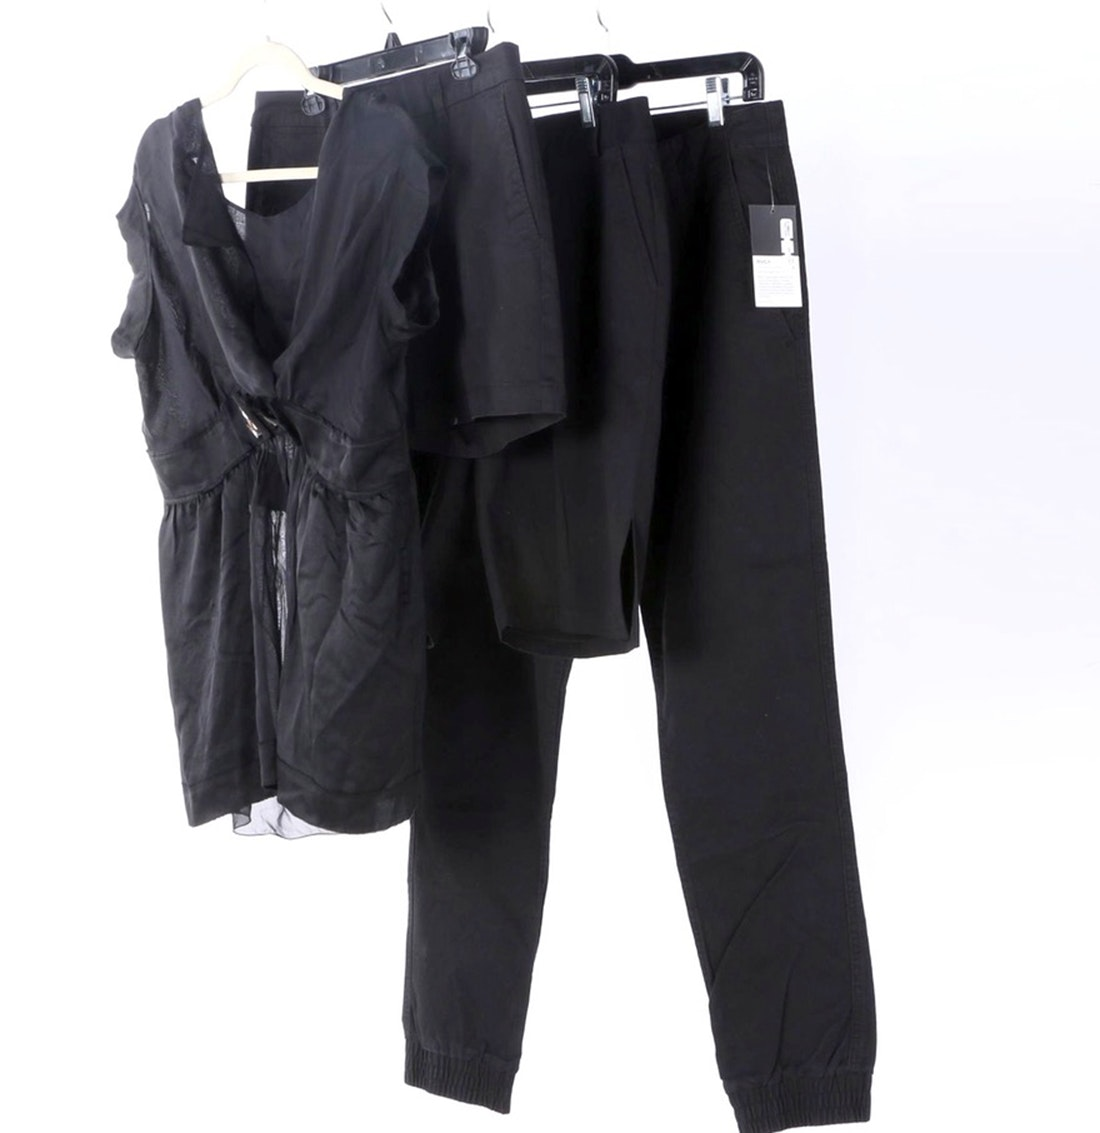 Collection of Women's Black Clothing